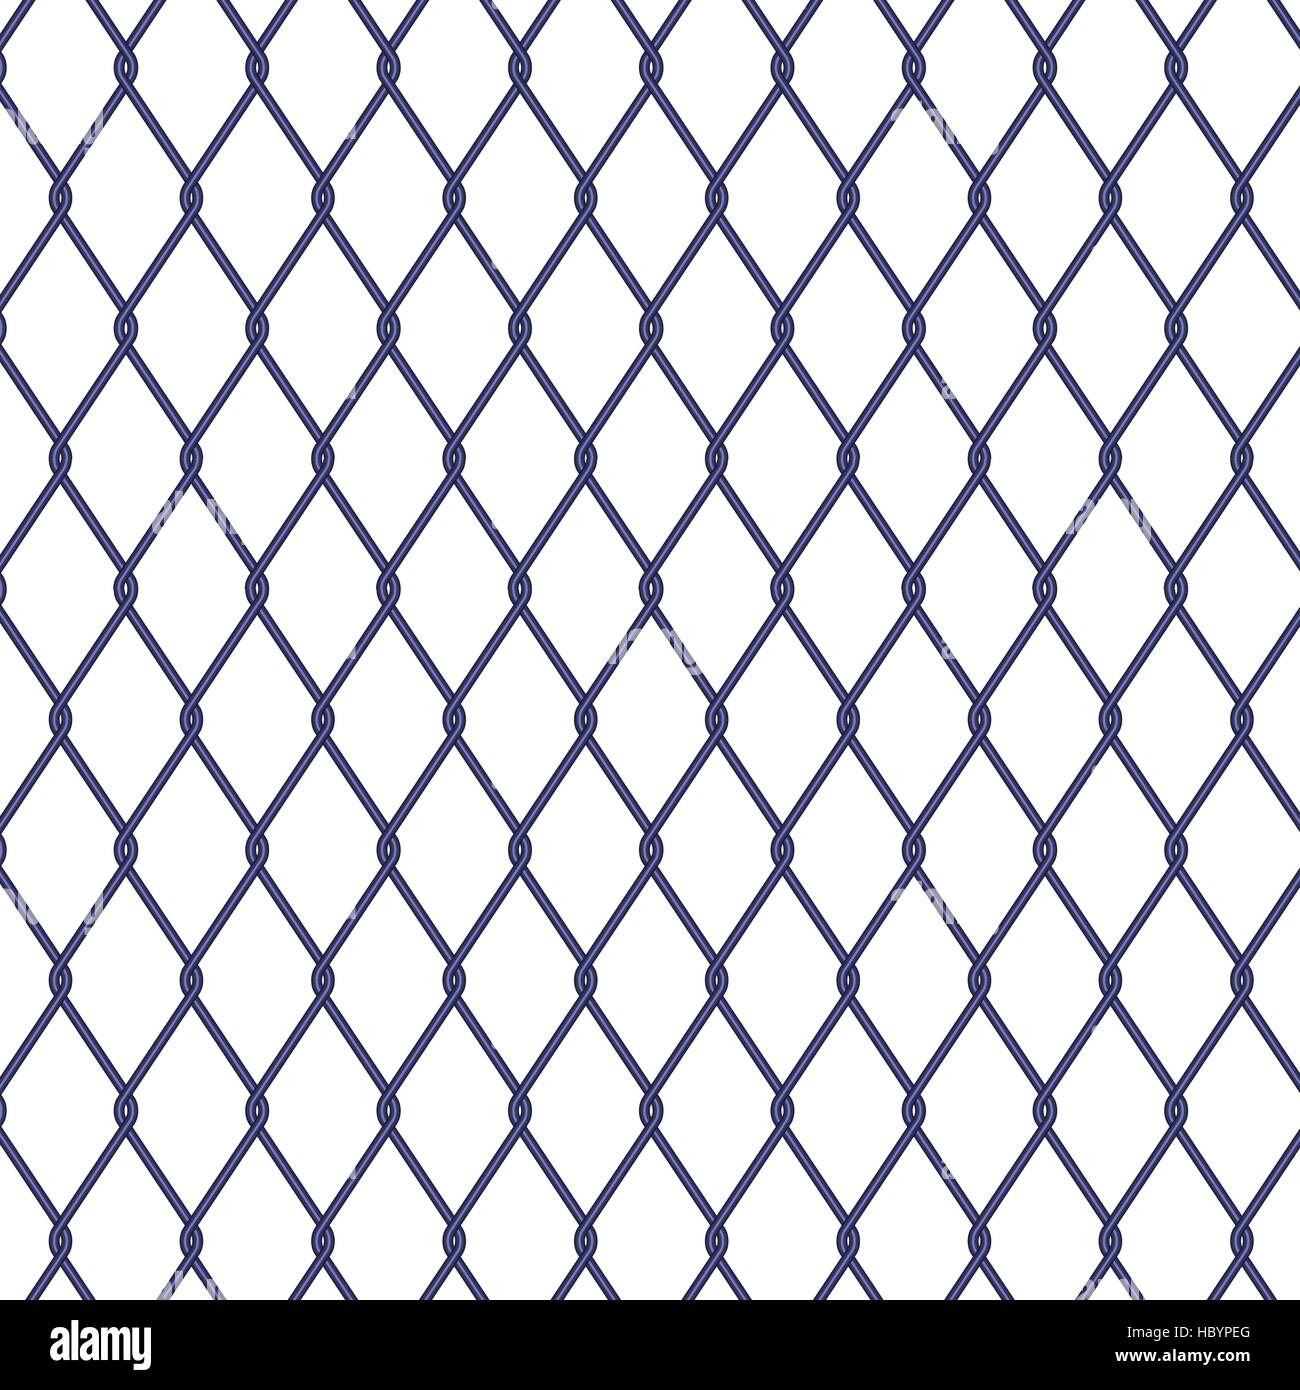 Wire fence on white background, stock vector Stock Vector Art ...